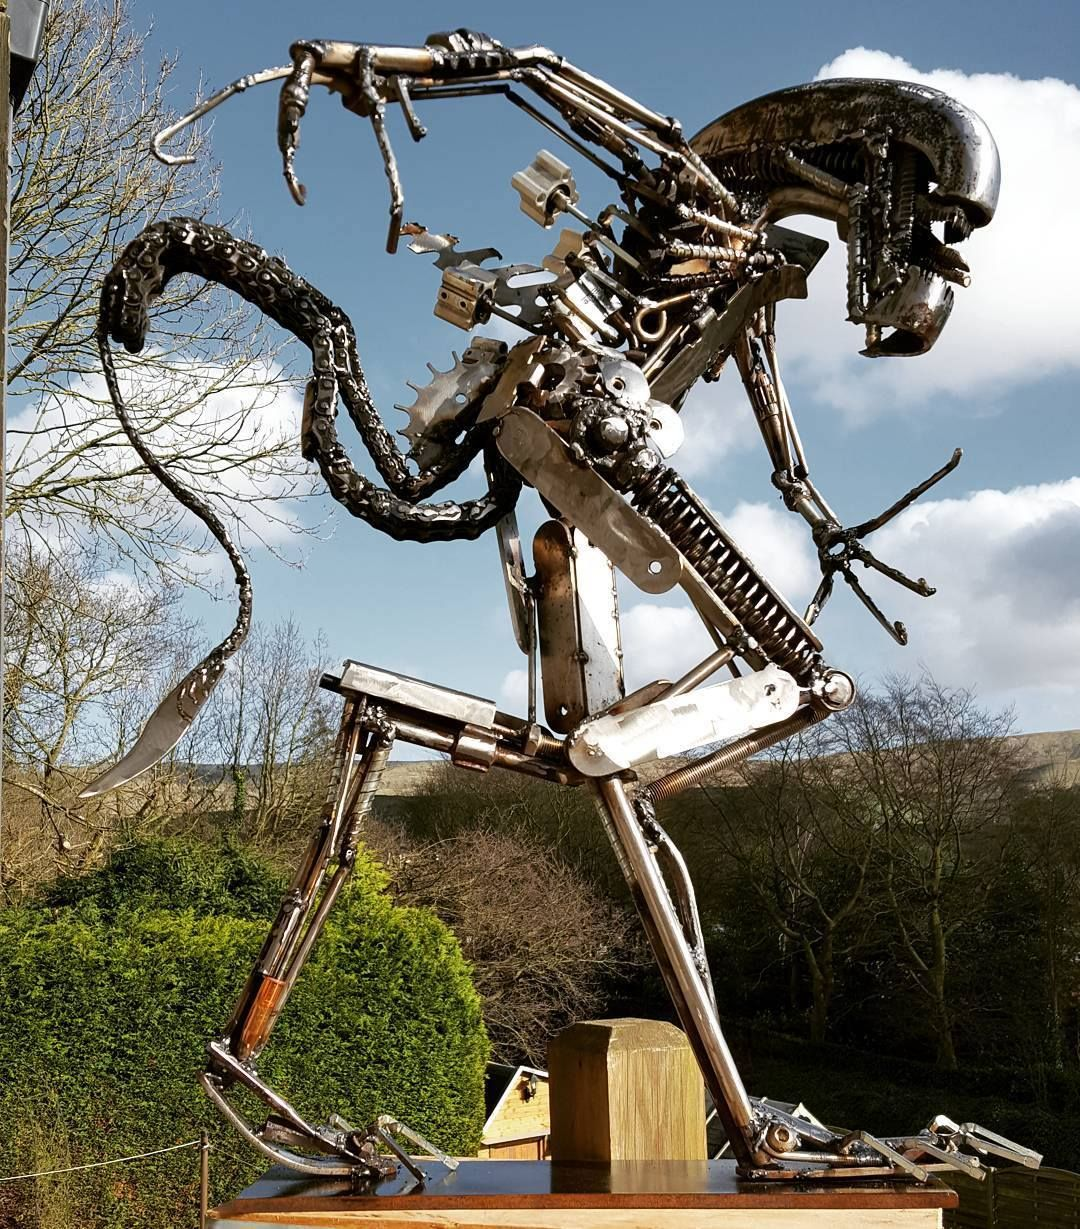 Alien Weldart By Sutclif Westcoweld Ukwelding Welding - Artist creates incredible sculptures welding together old farming equipment